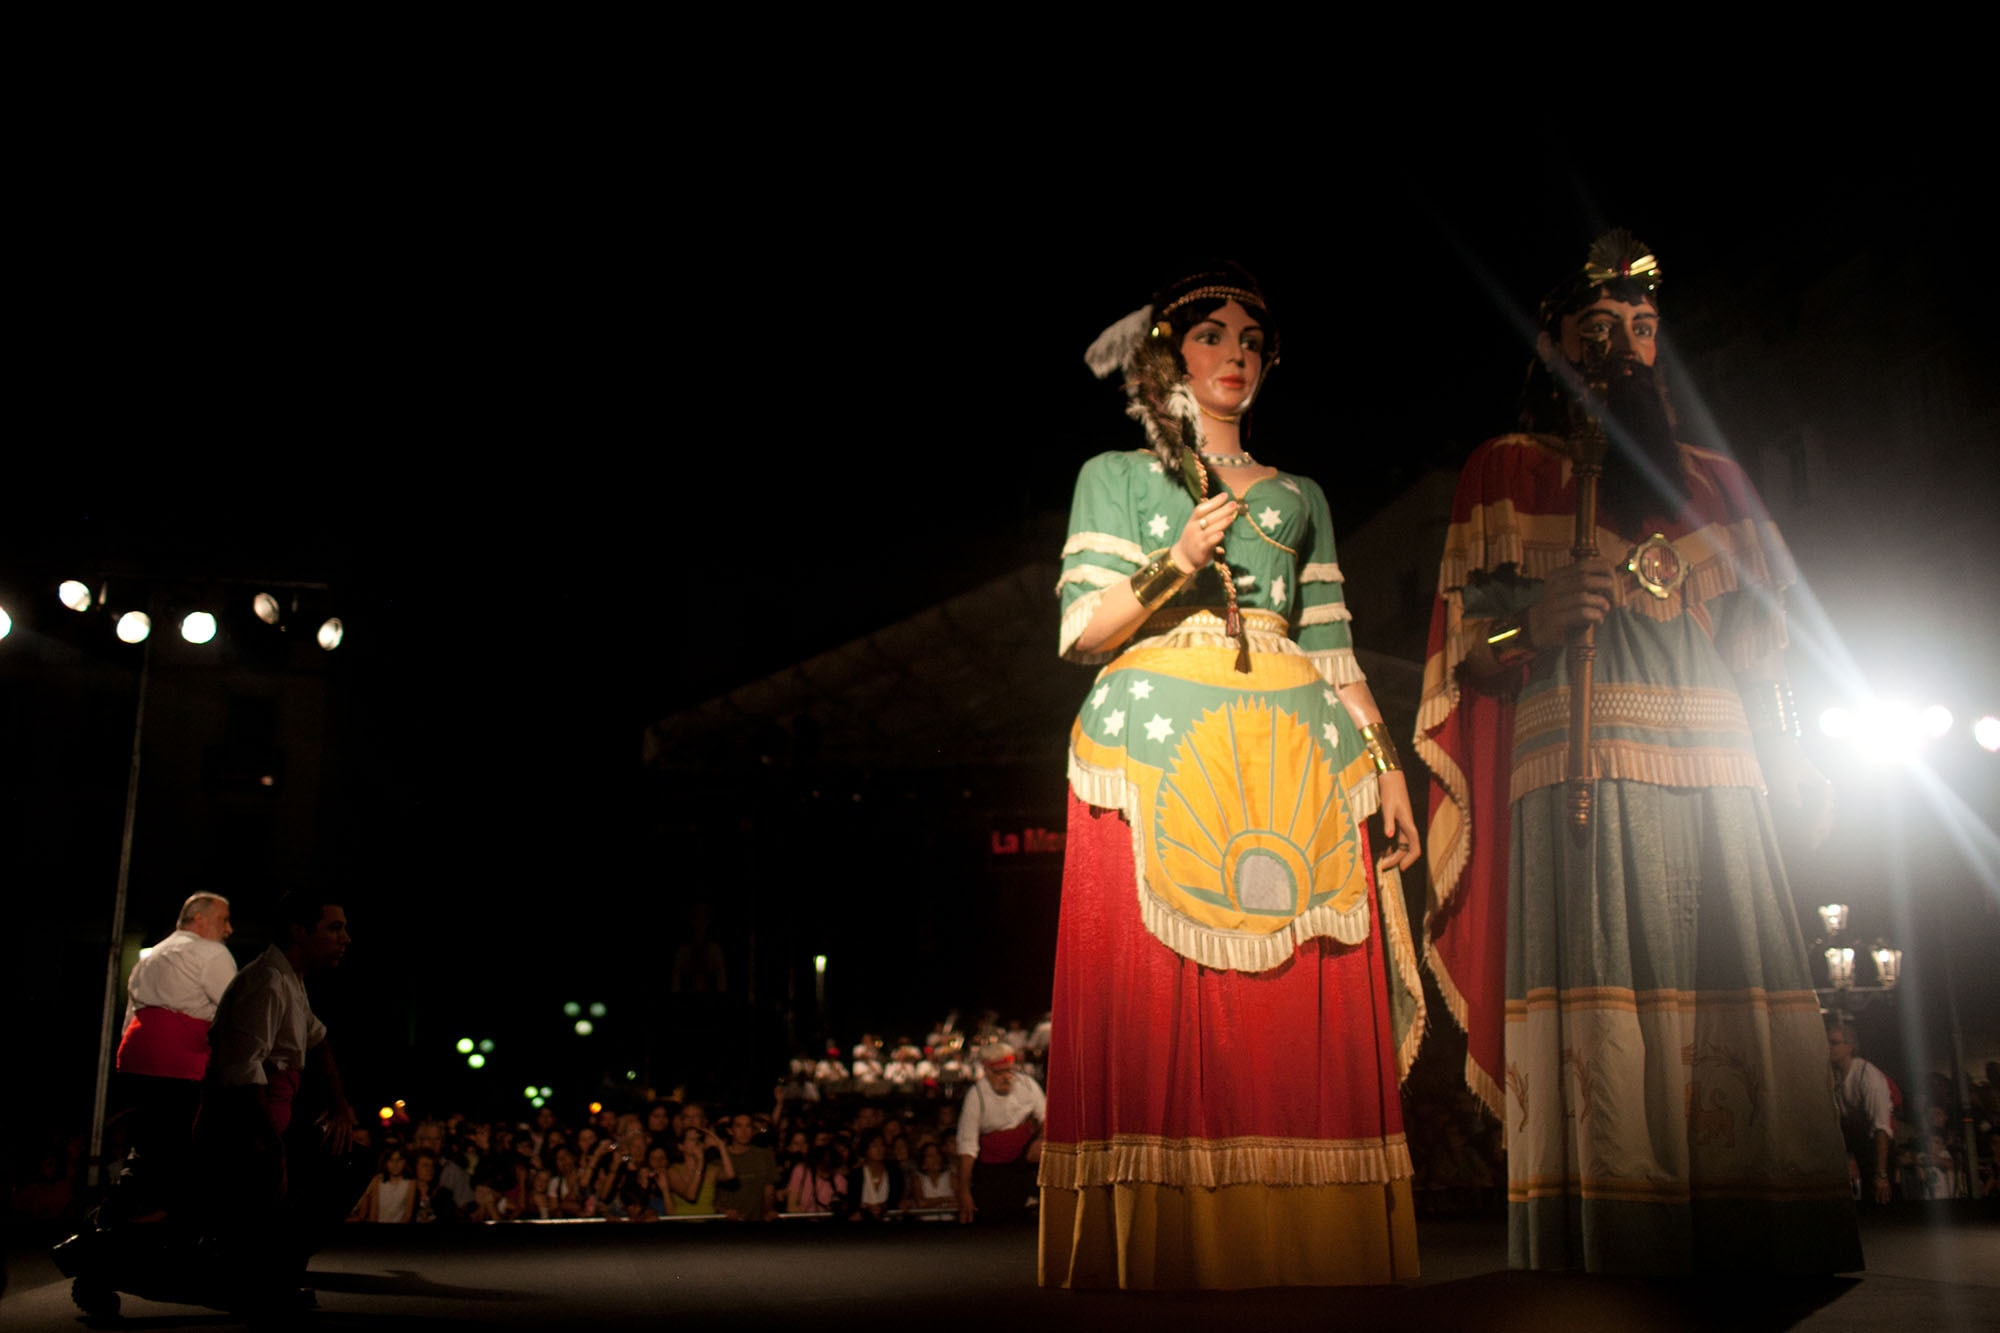 Gegants at the Opening Ceremony of La Mercè Festival 2011 in Barcelona, Spain